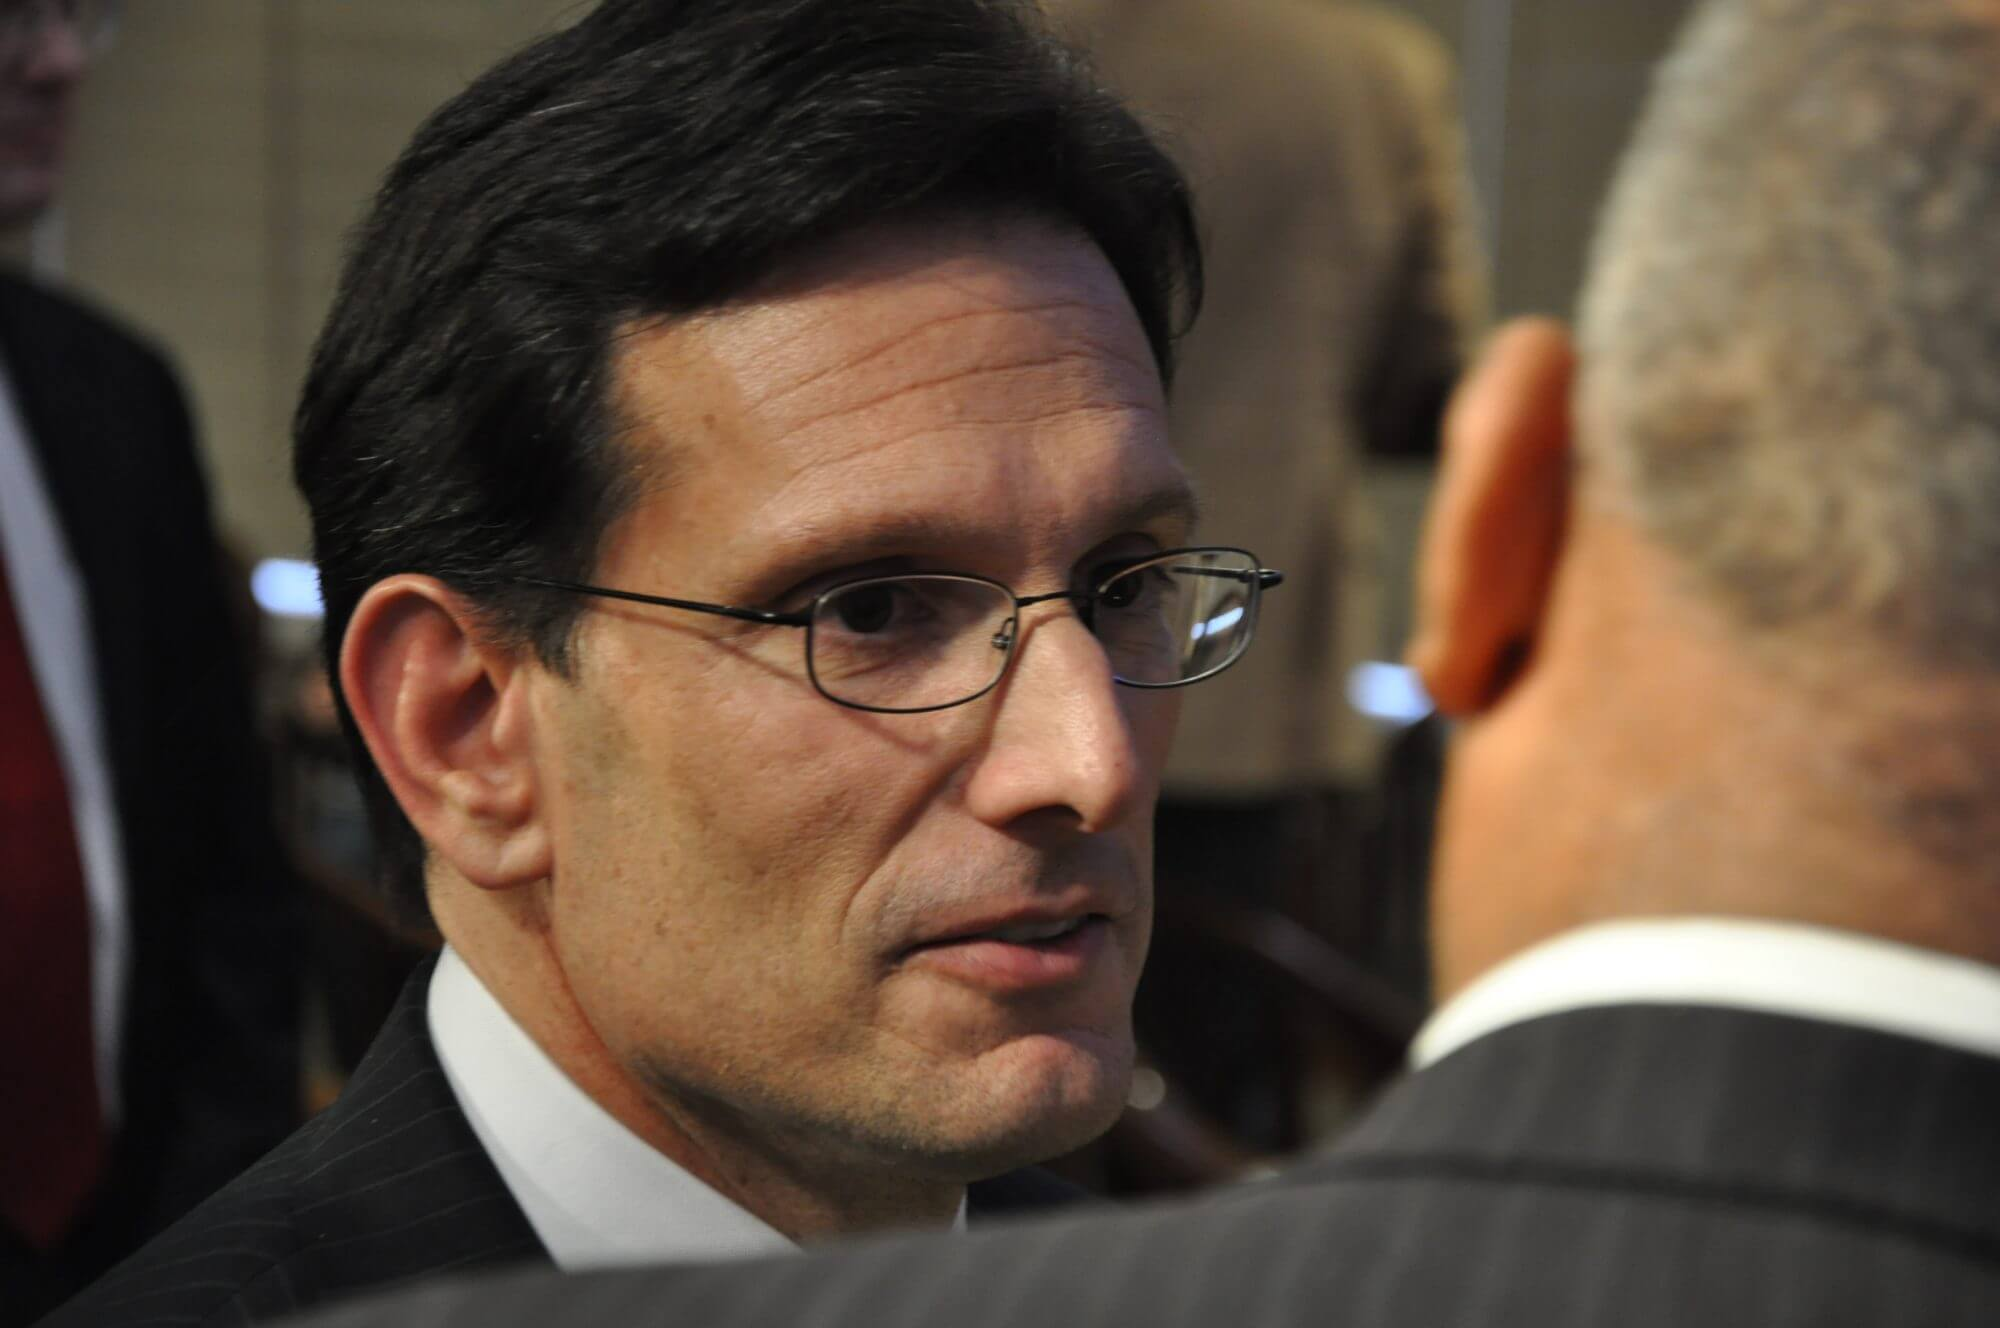 Cantor looks to rebrand GOP for broader appeal